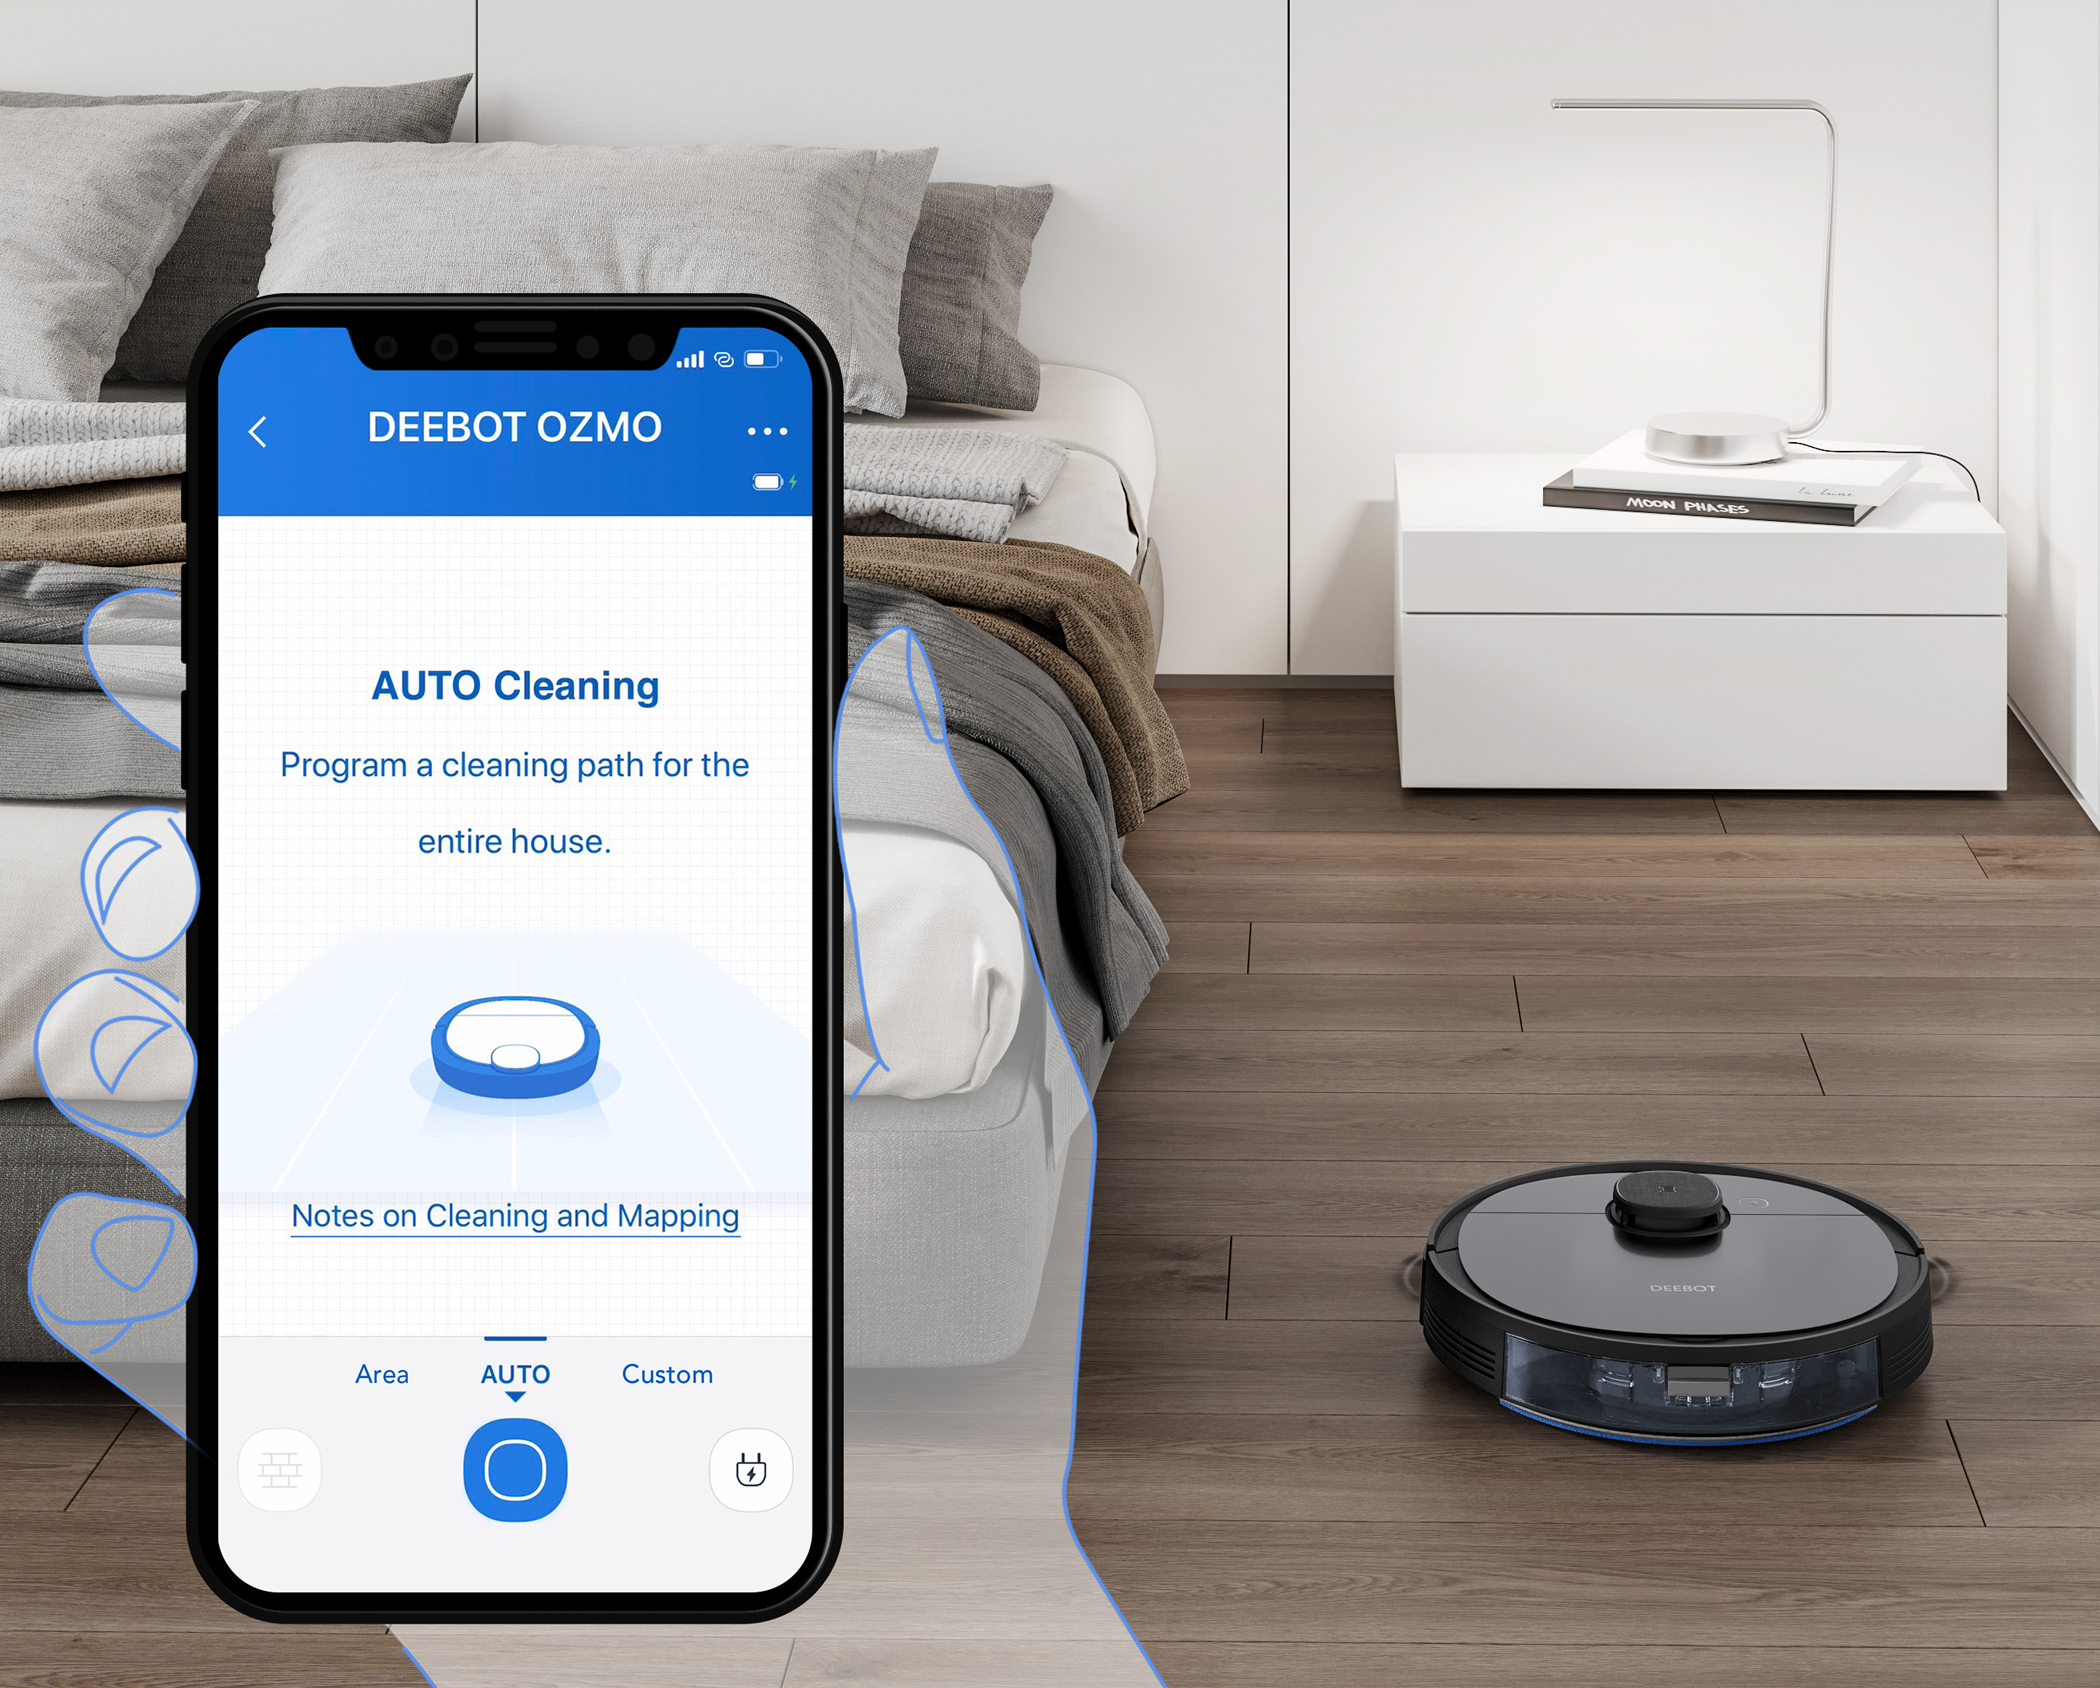 <h1>Ecovacs Saugroboter DEEBOT OZMO 950</h1><h3 style='font-size: 20px; margin: 0px 0px 15px 0px;'> -Saug- und Wischroboter, Multi-Floor Mapping</h3>